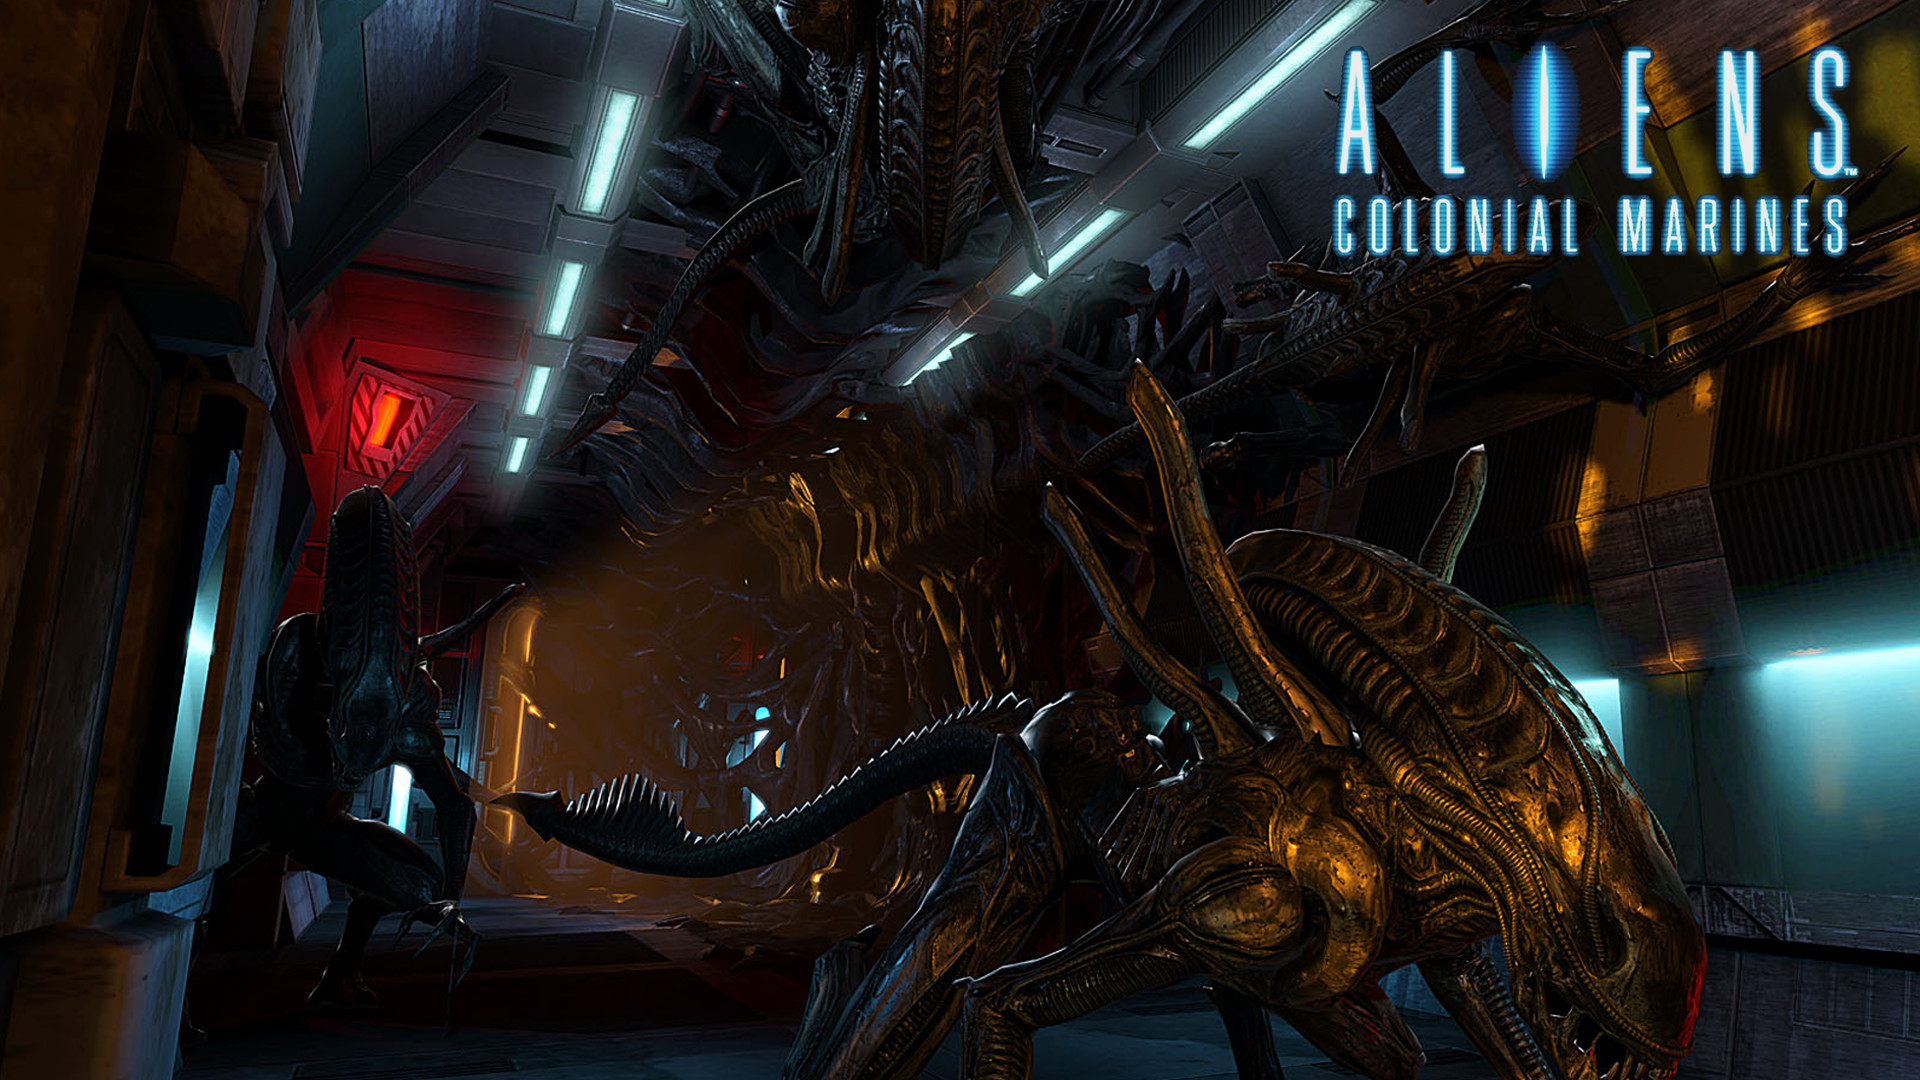 … Wallpapers of Aliens Colonial Marines HDQ Cover …